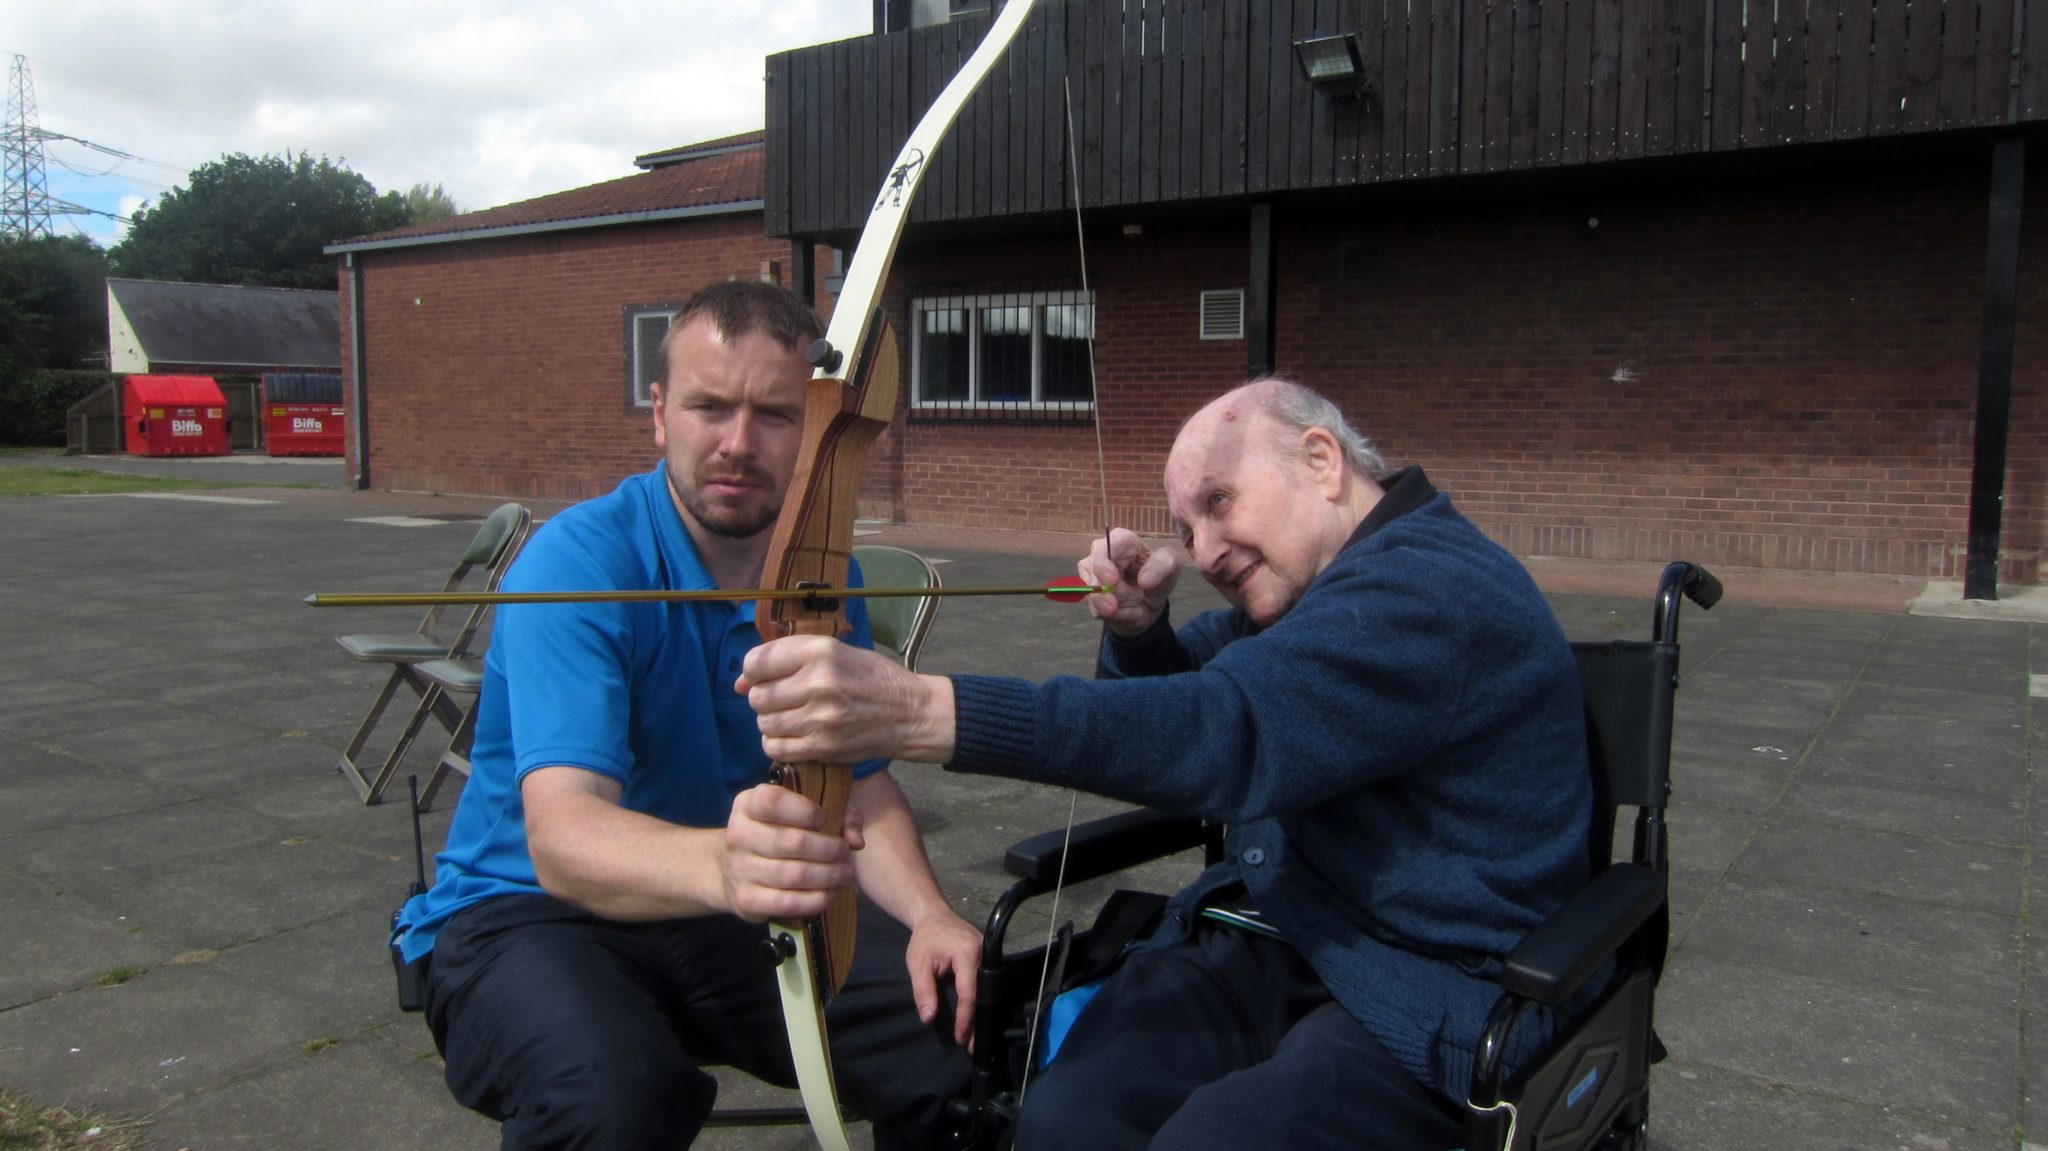 Archery with The Grange Day Centre and Club Venue, Throckley